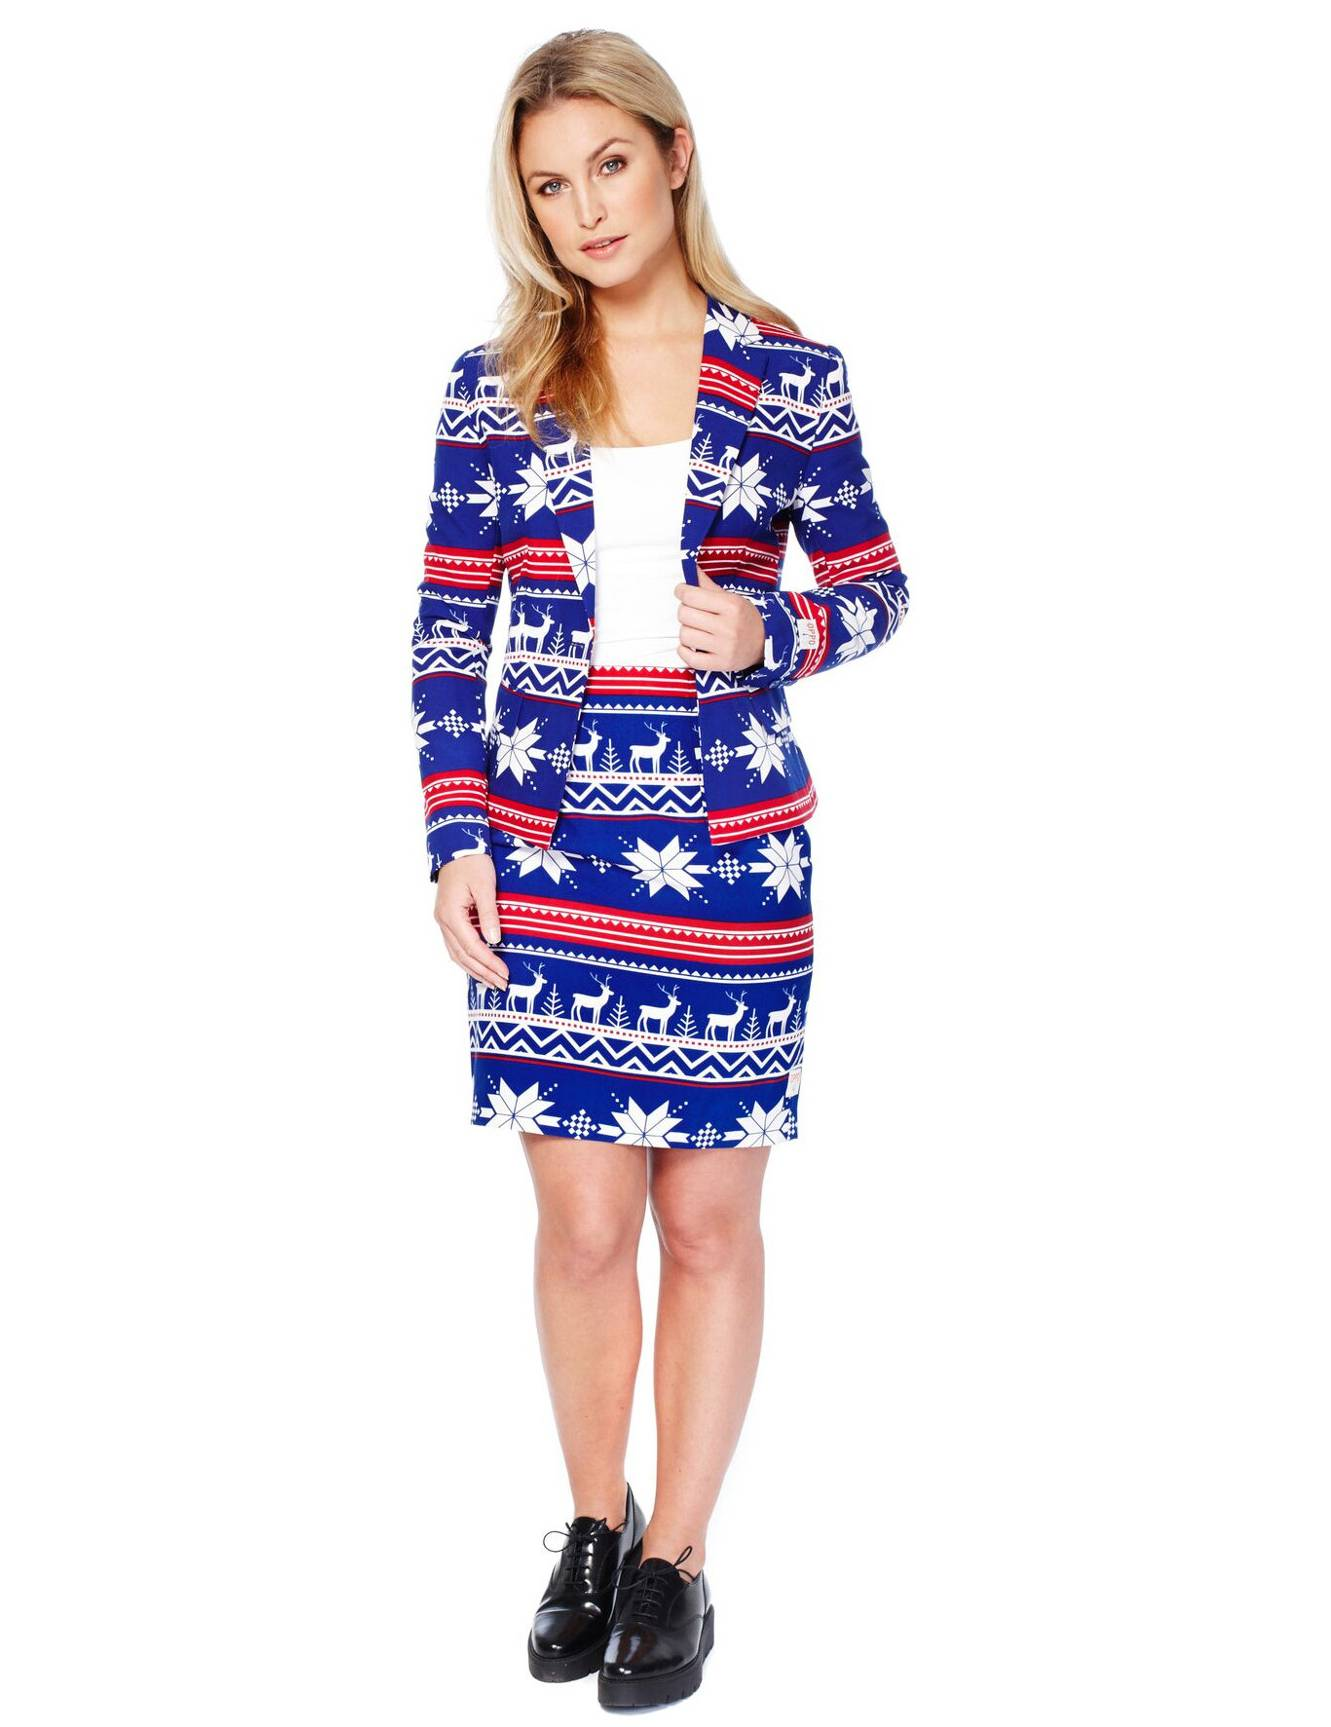 Vegaoo Costume Miss Snow donna Opposuits - XS (34)